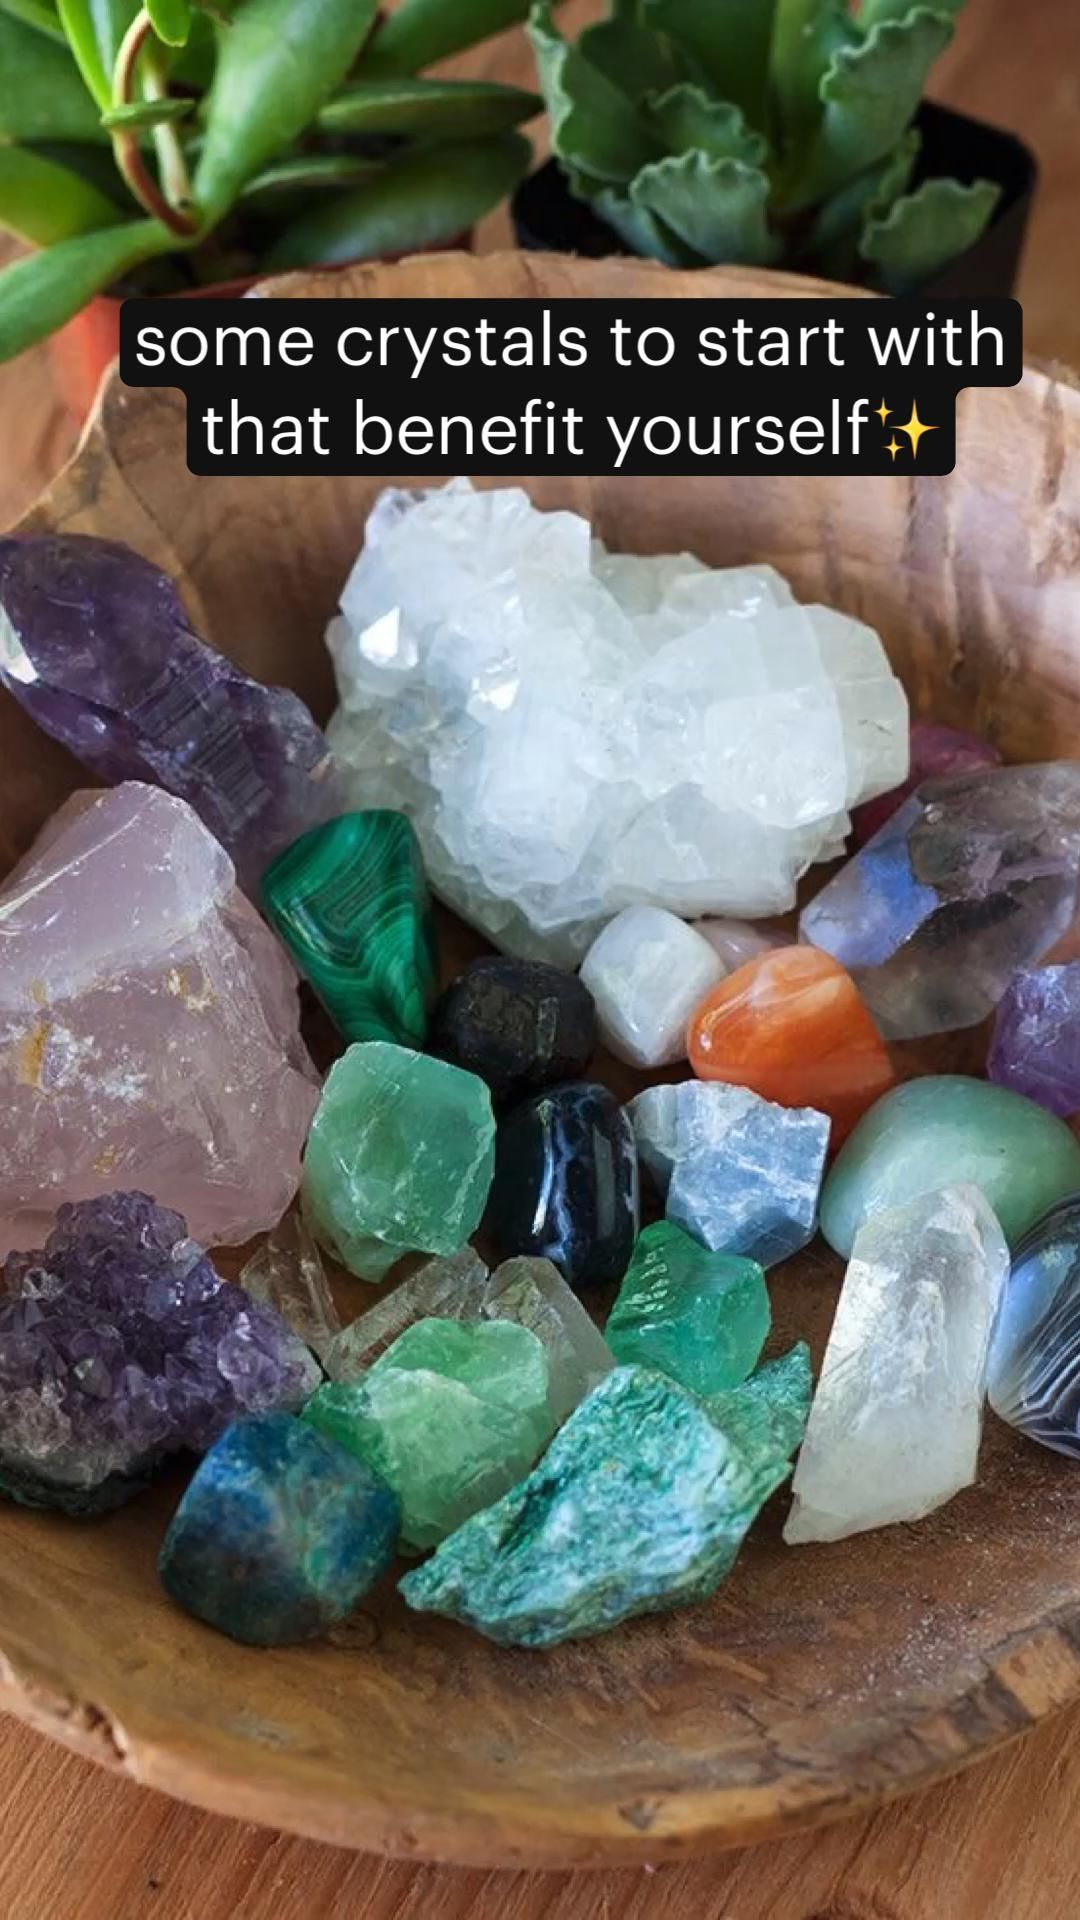 some crystals to start with that benefit yourself✨